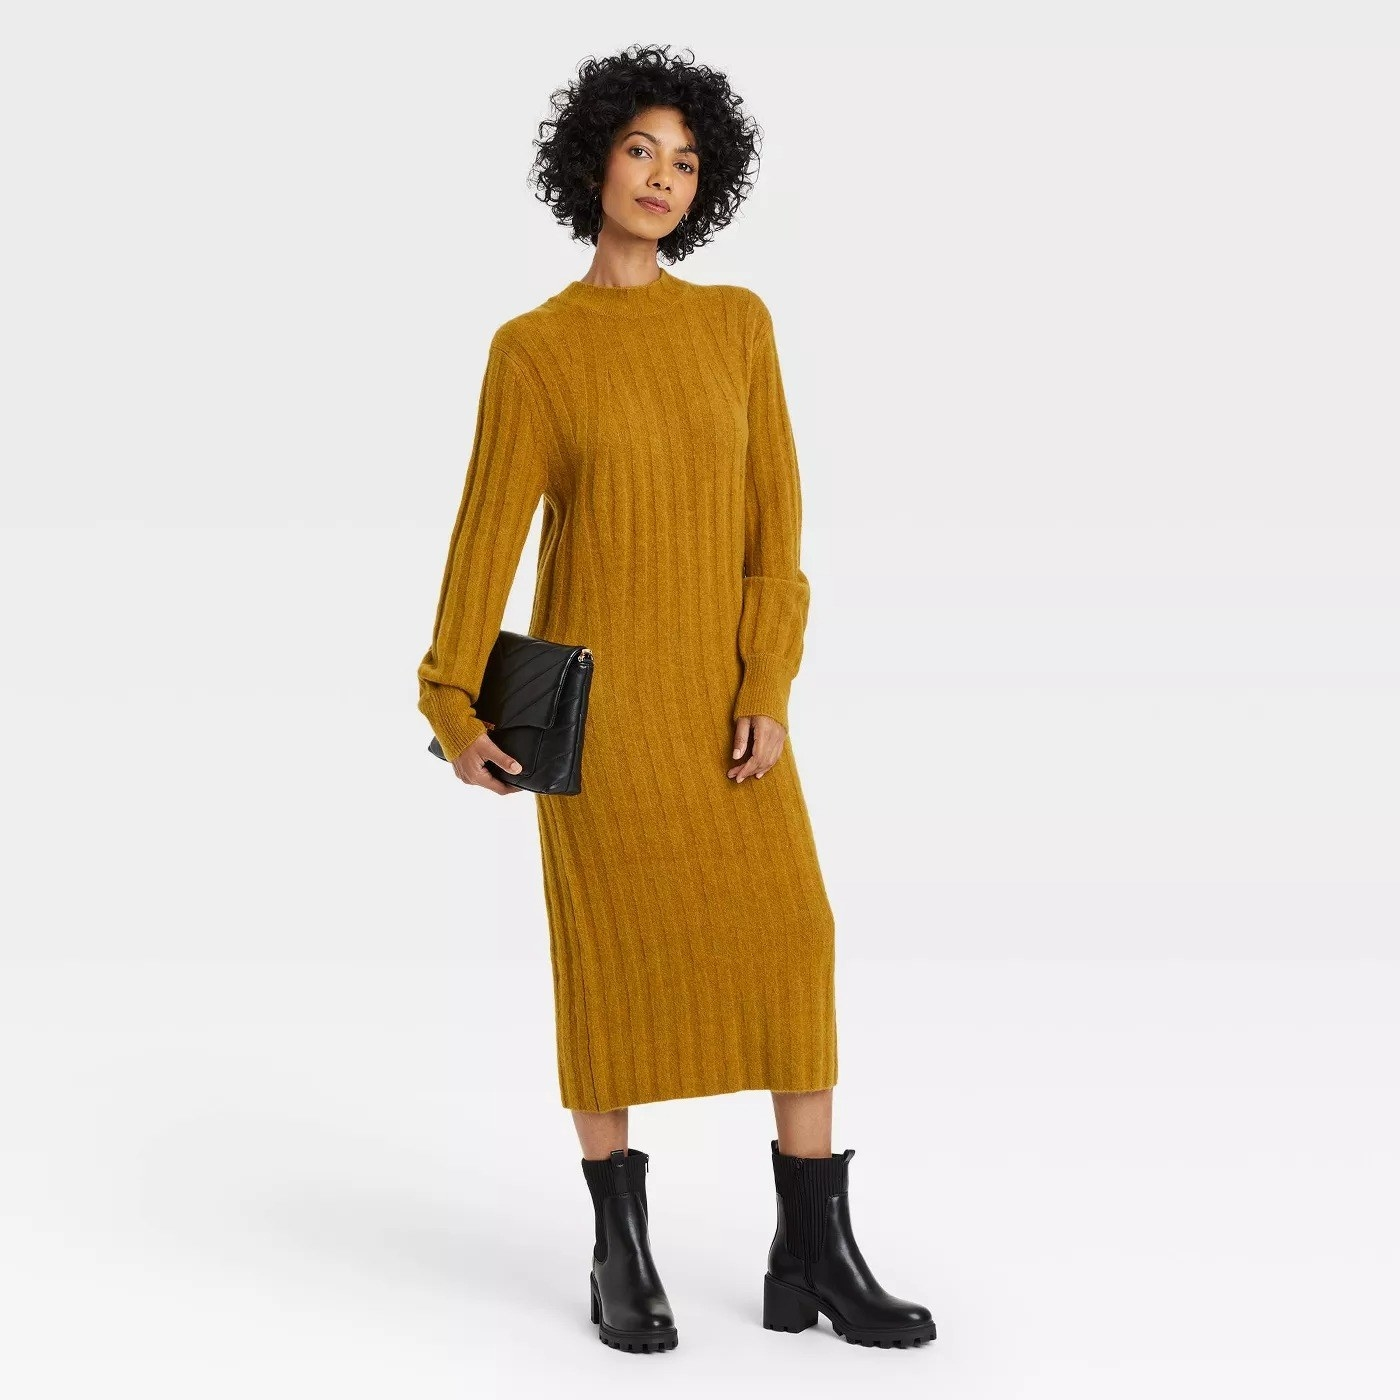 Model wearing mustard yellow dress, goes past the ankle